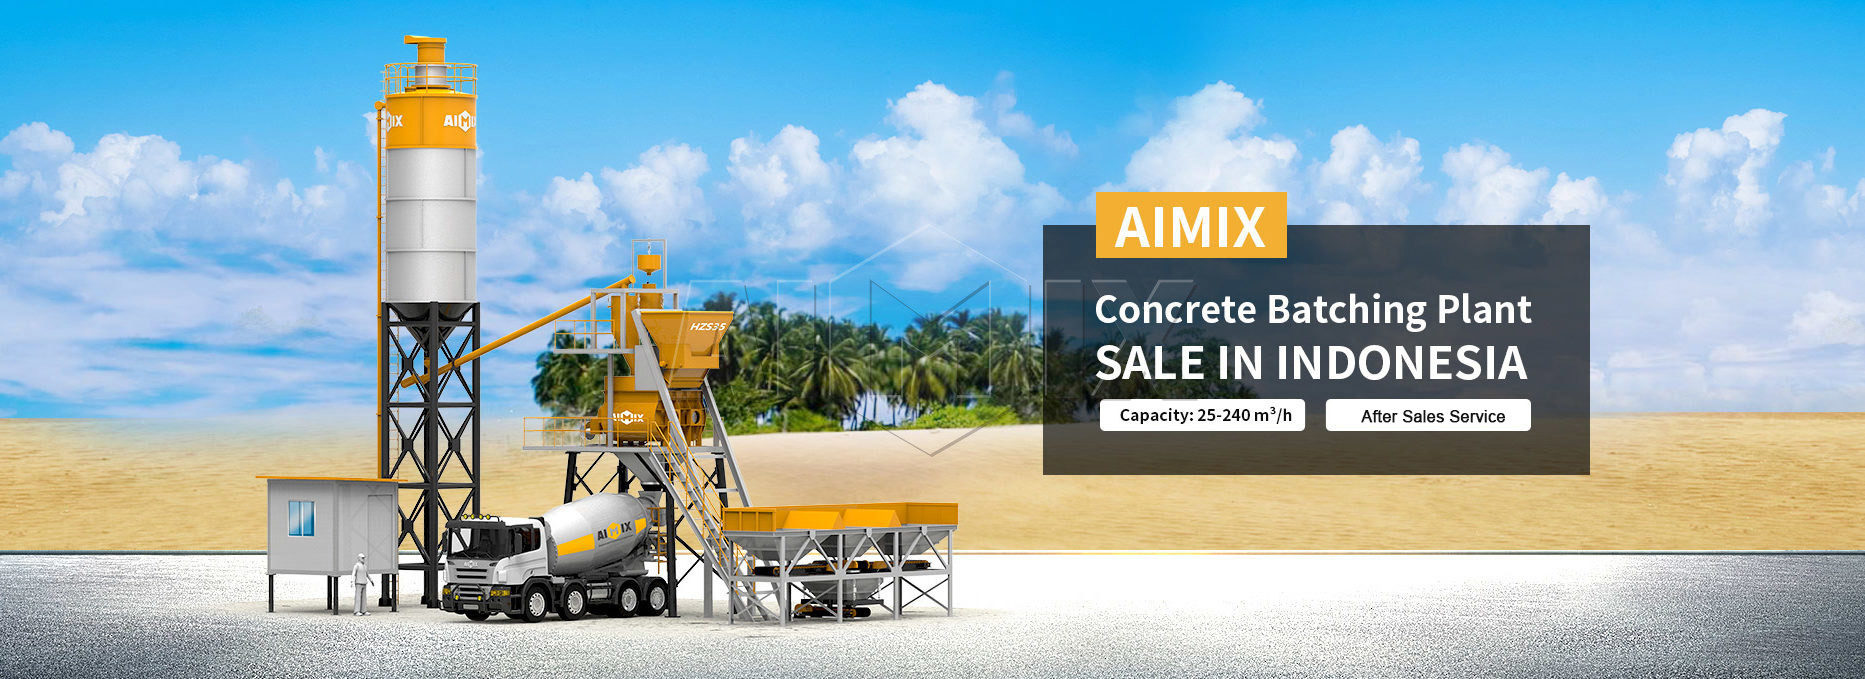 concrete-batching-plant-in-Indonesia